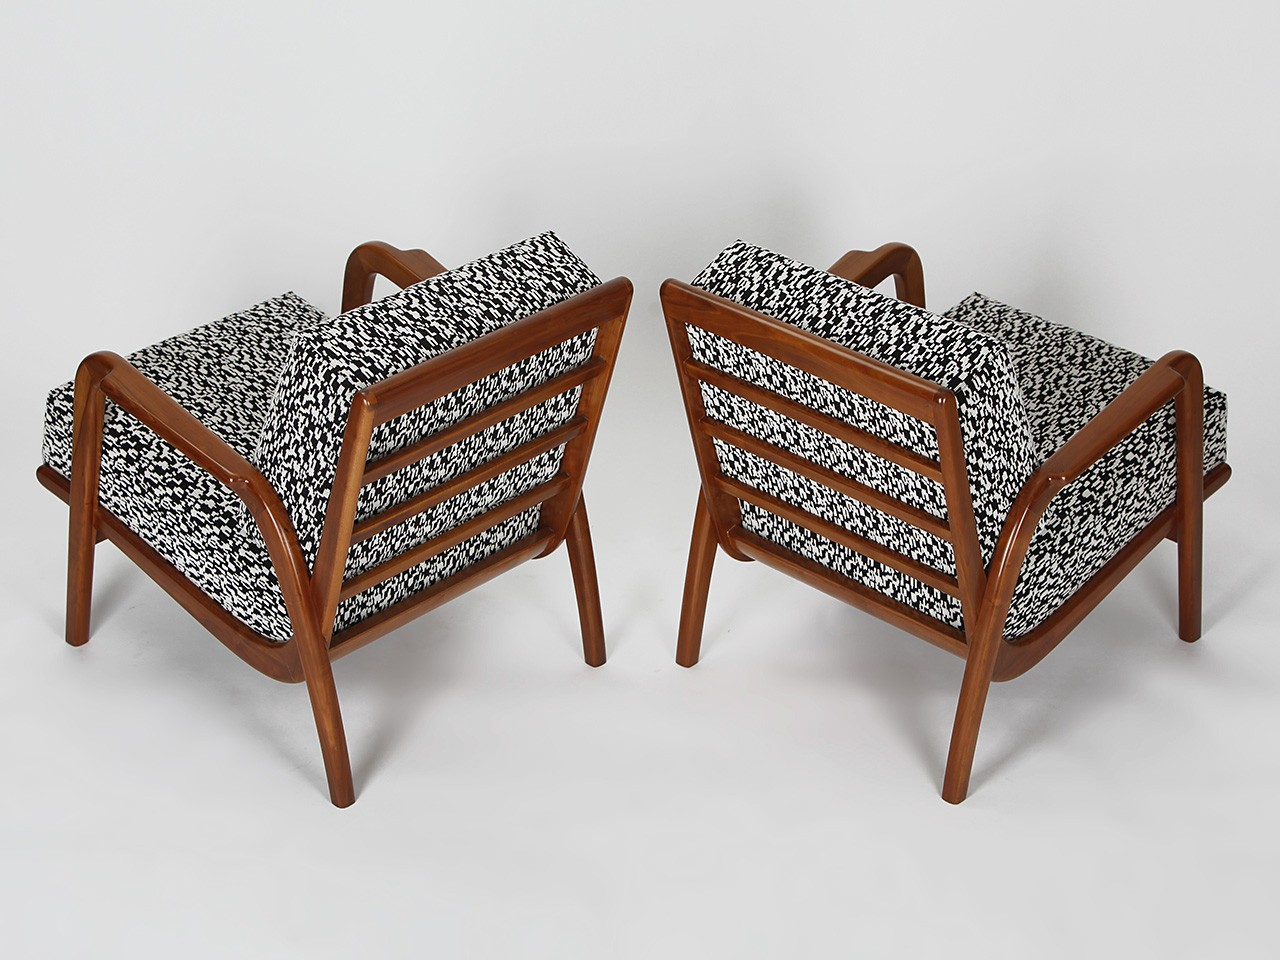 Pair Of Czech Mid Century Armchairs   1950s. Previous Next